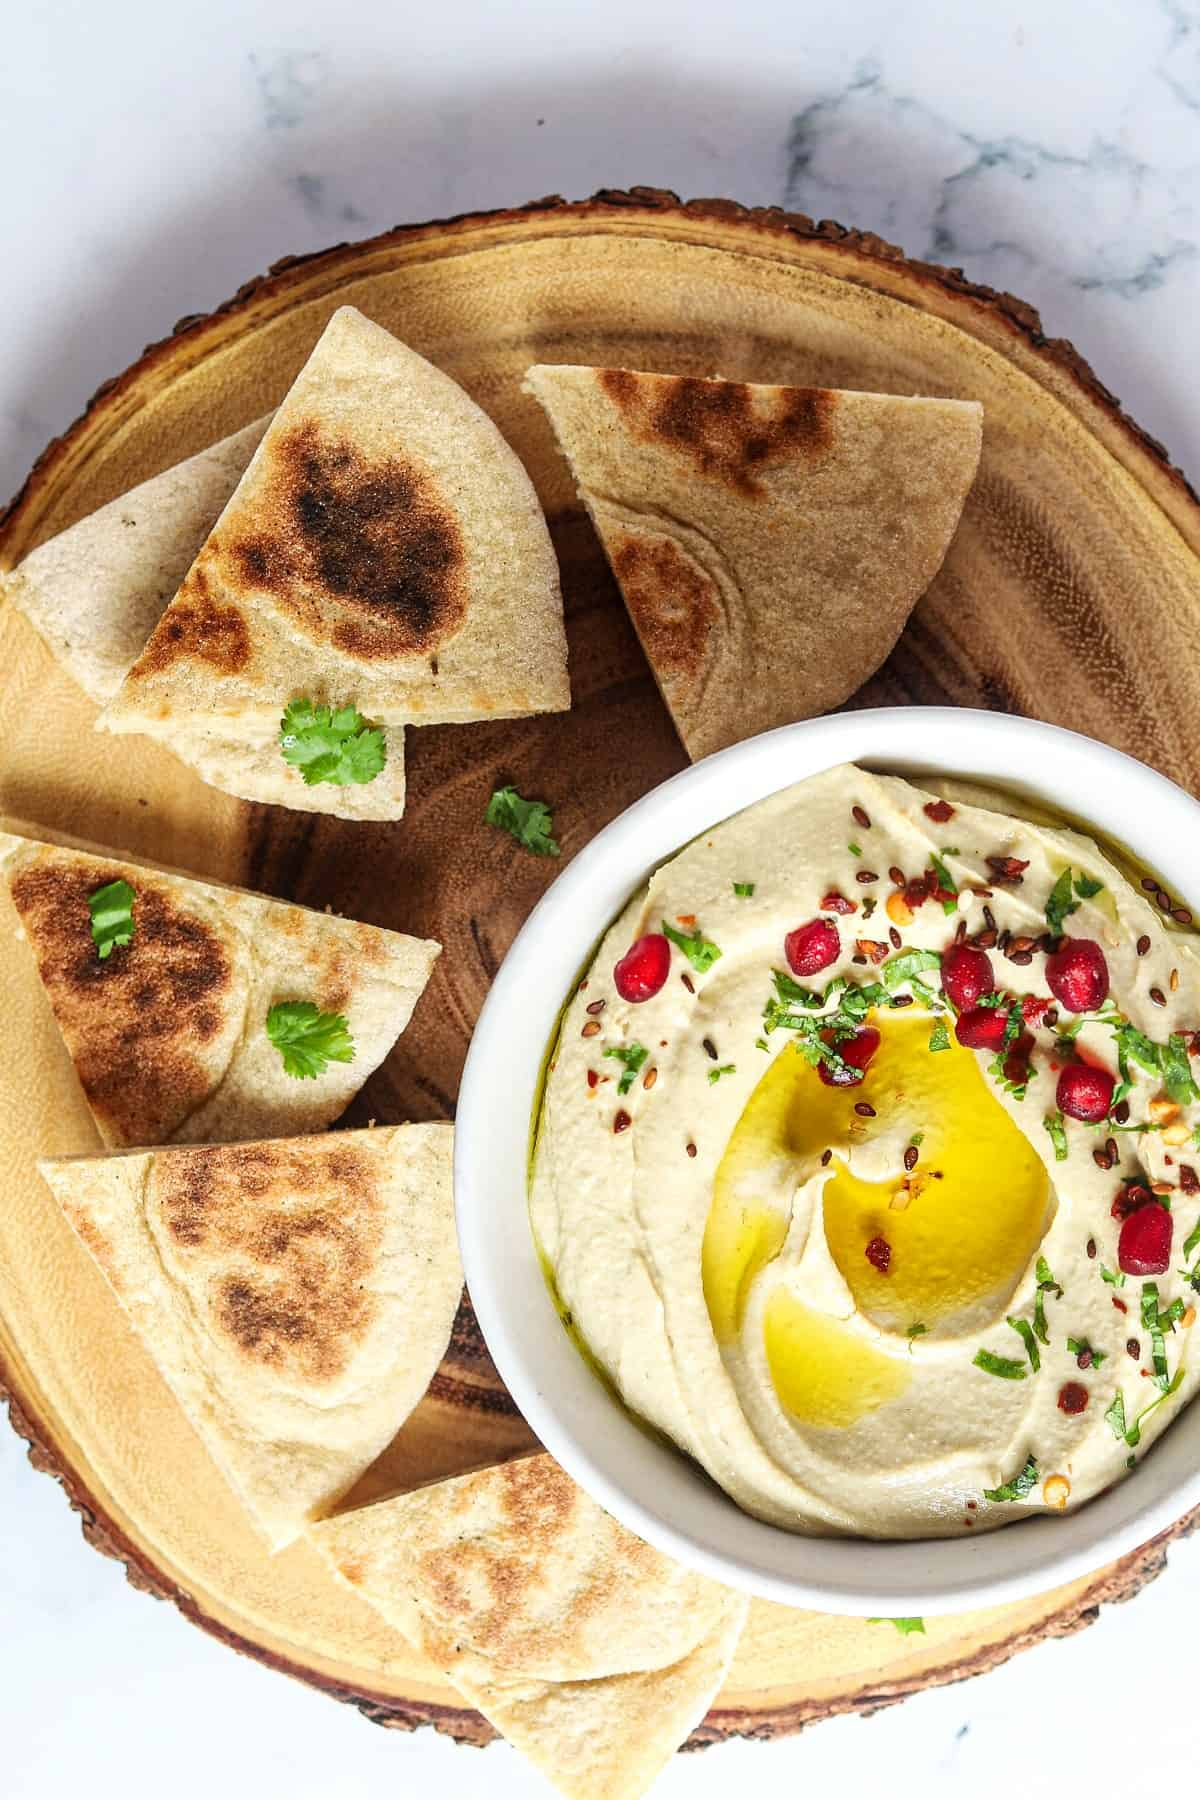 Bread triangles served up alongside a bowl of hummus.